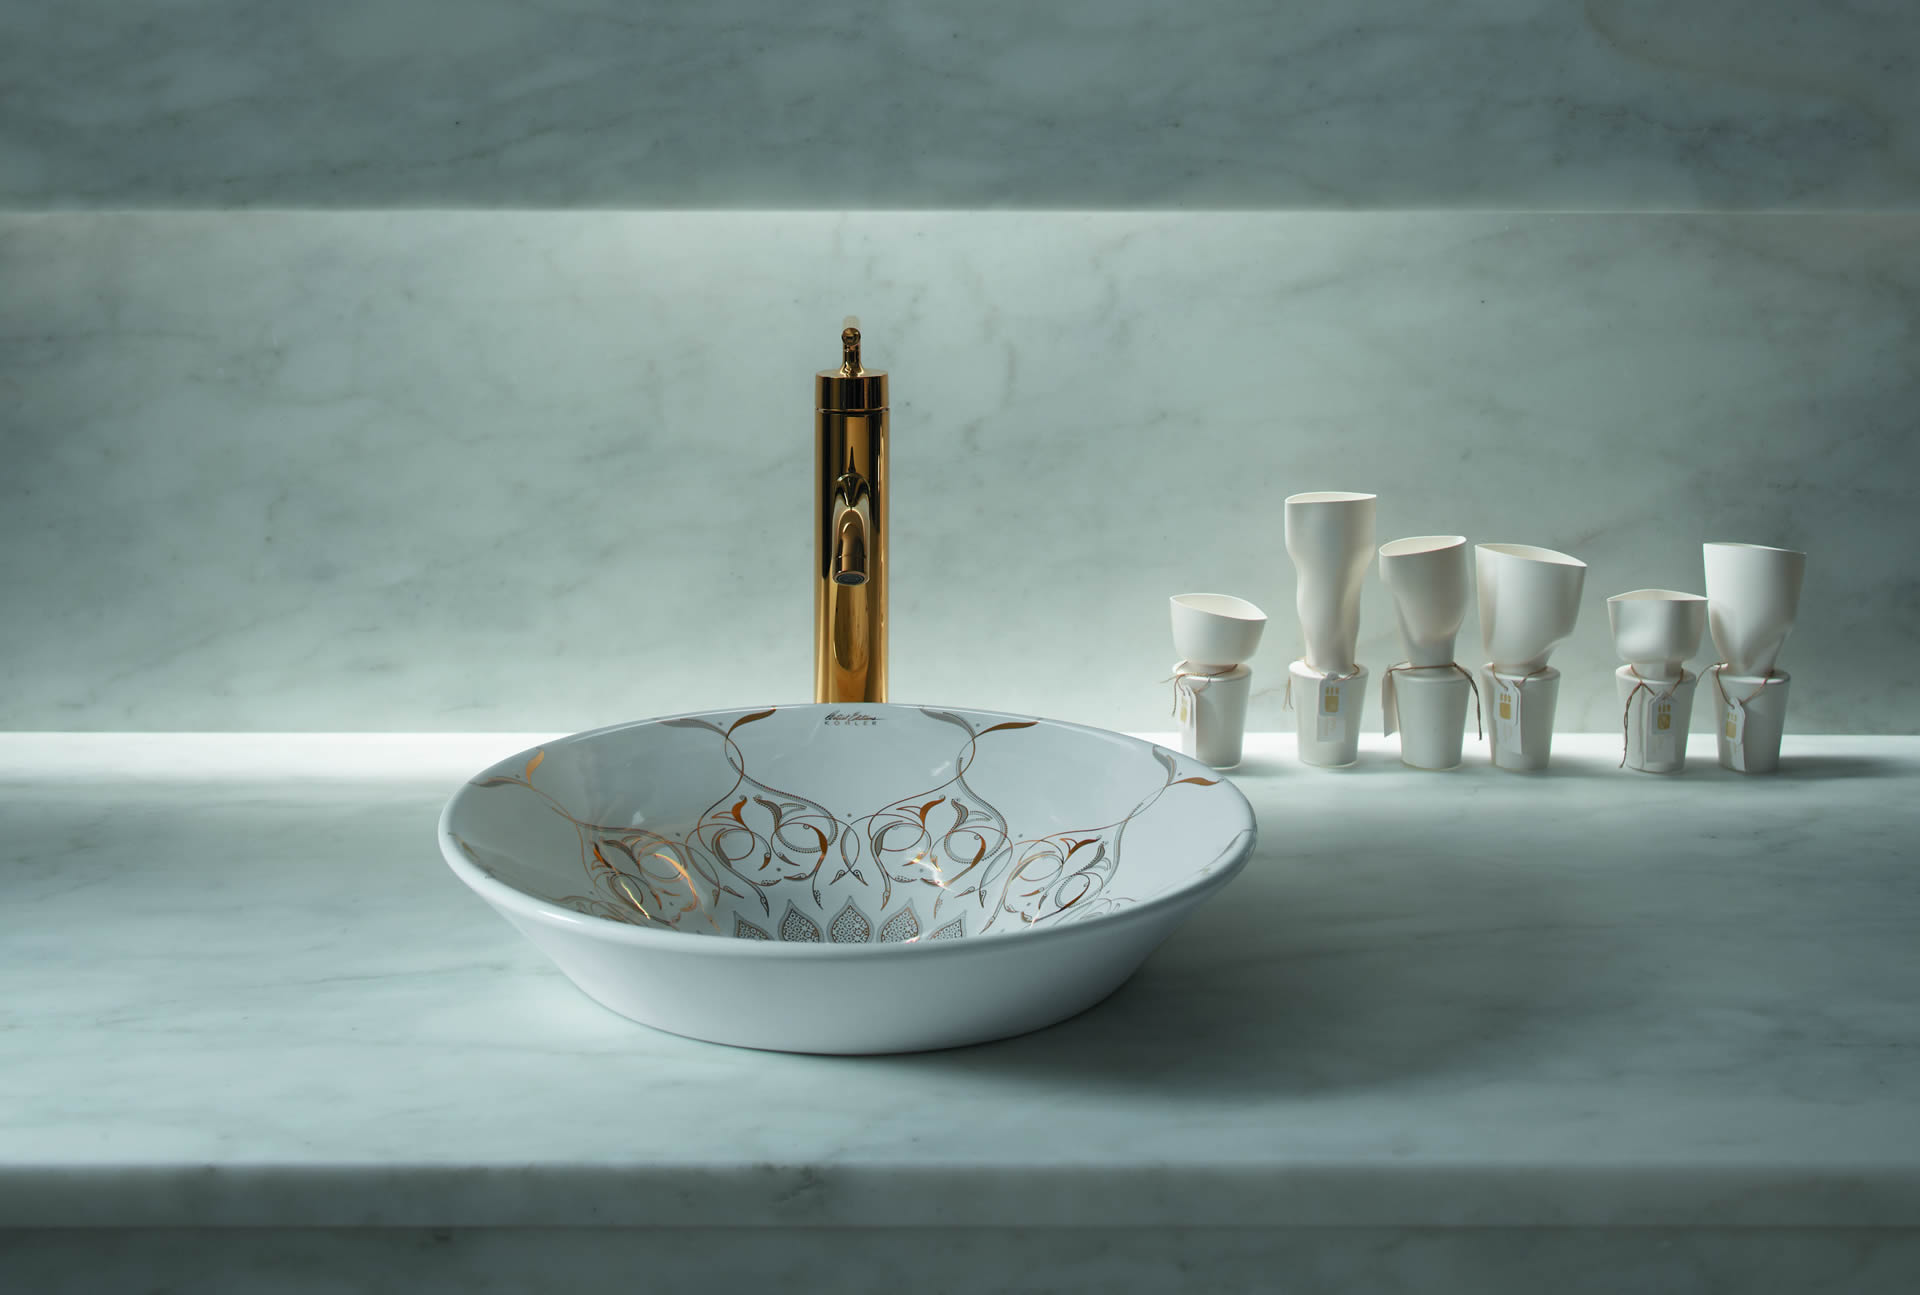 Artisan Sinks and Faucets